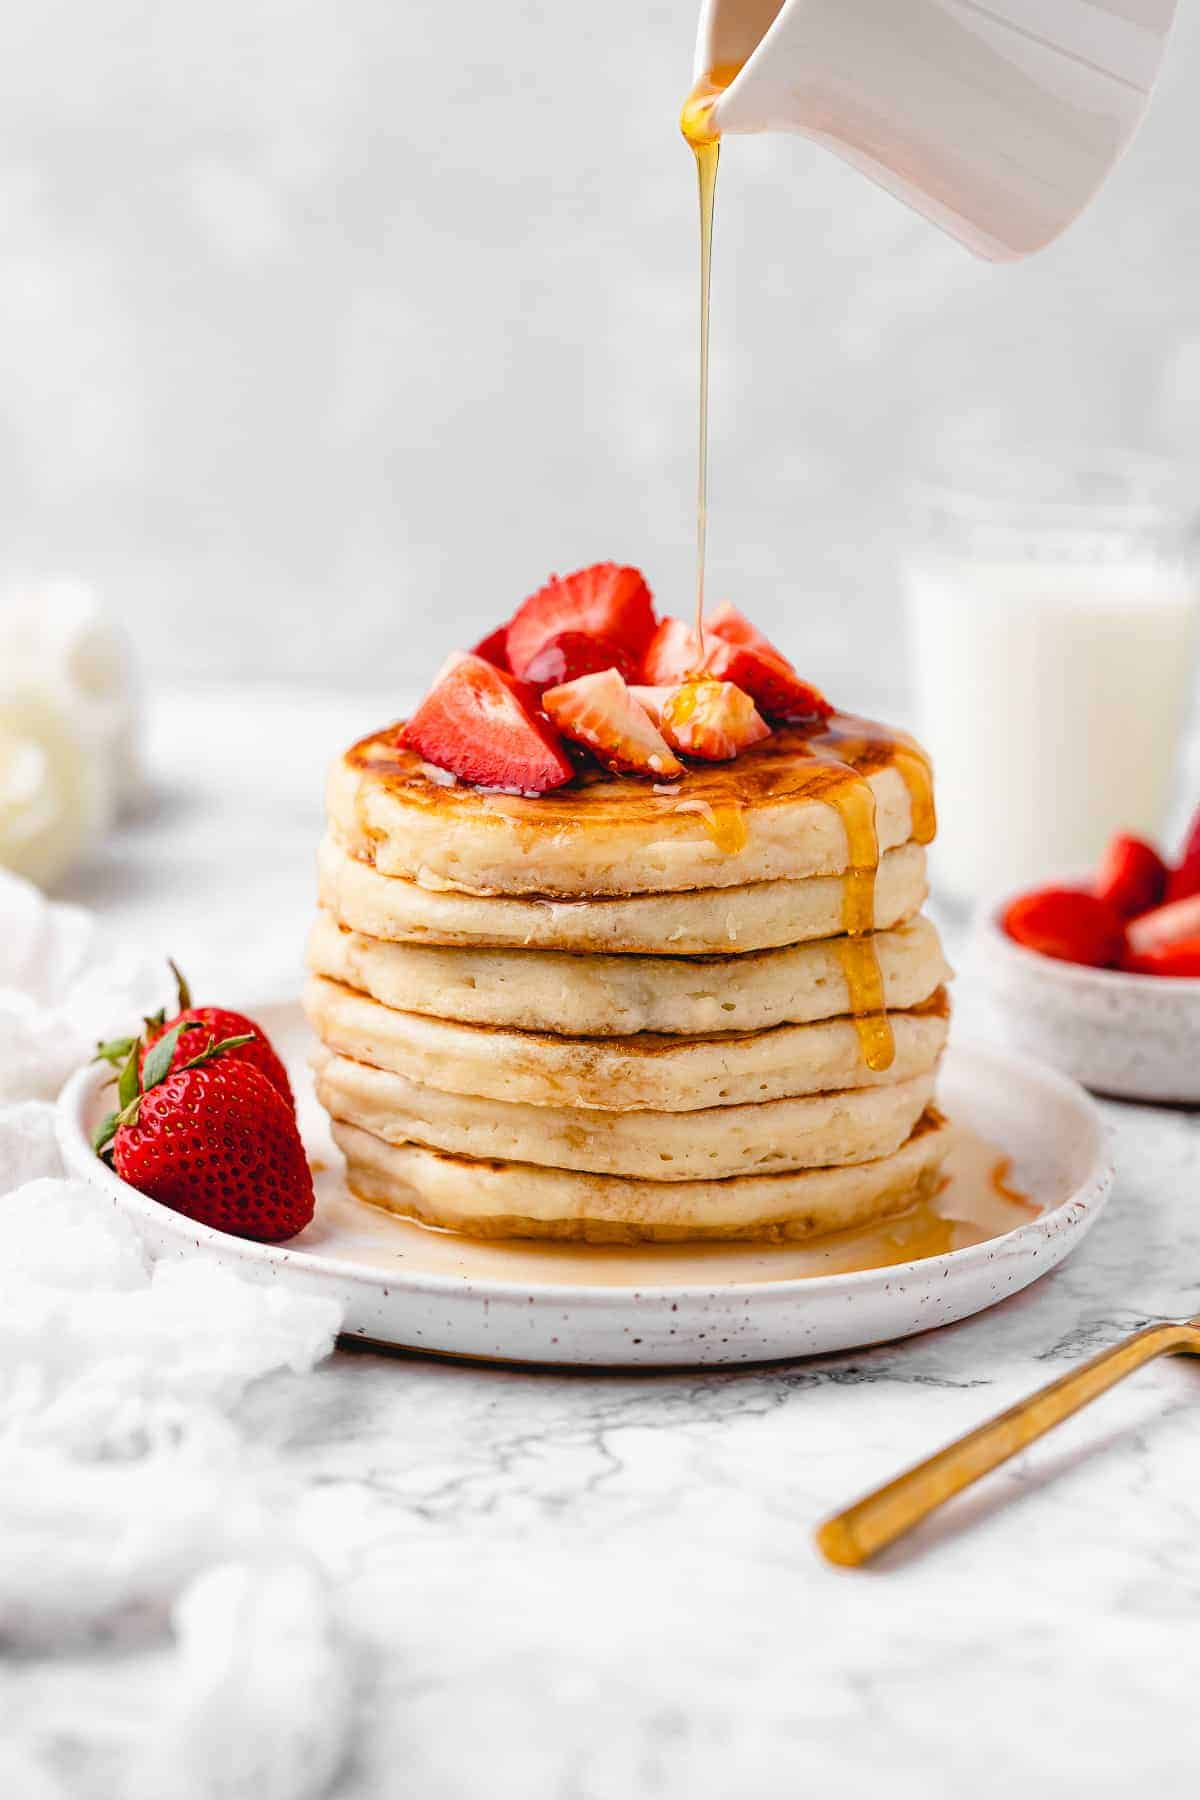 Pancakes topped with strawberry and maple syrup.